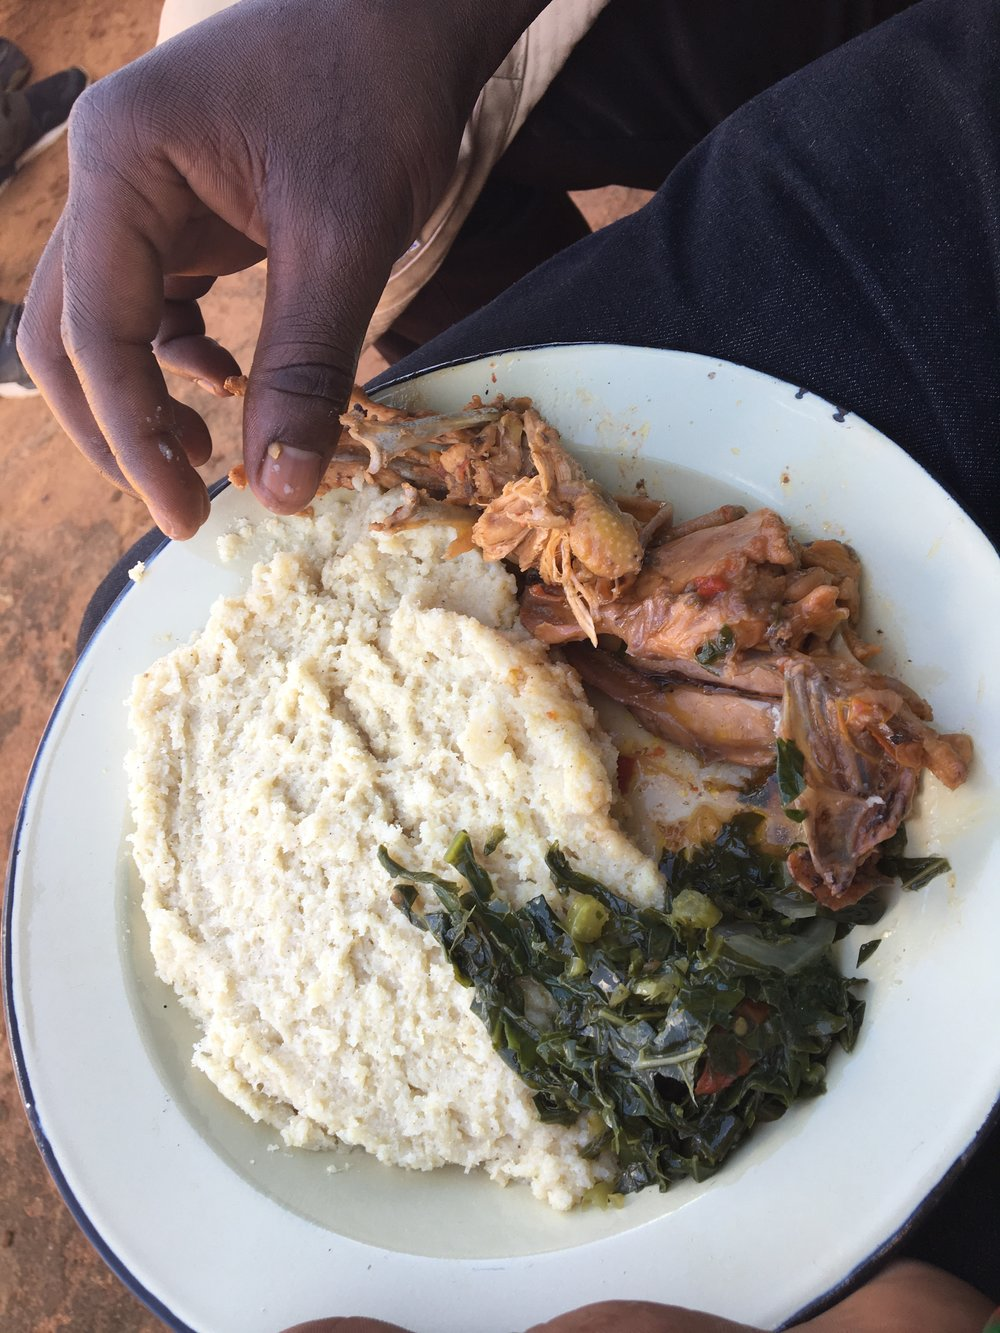 Everyone got a full plate of lunch: sadza, sauteed rape (canola) greens, and chicken, of course!